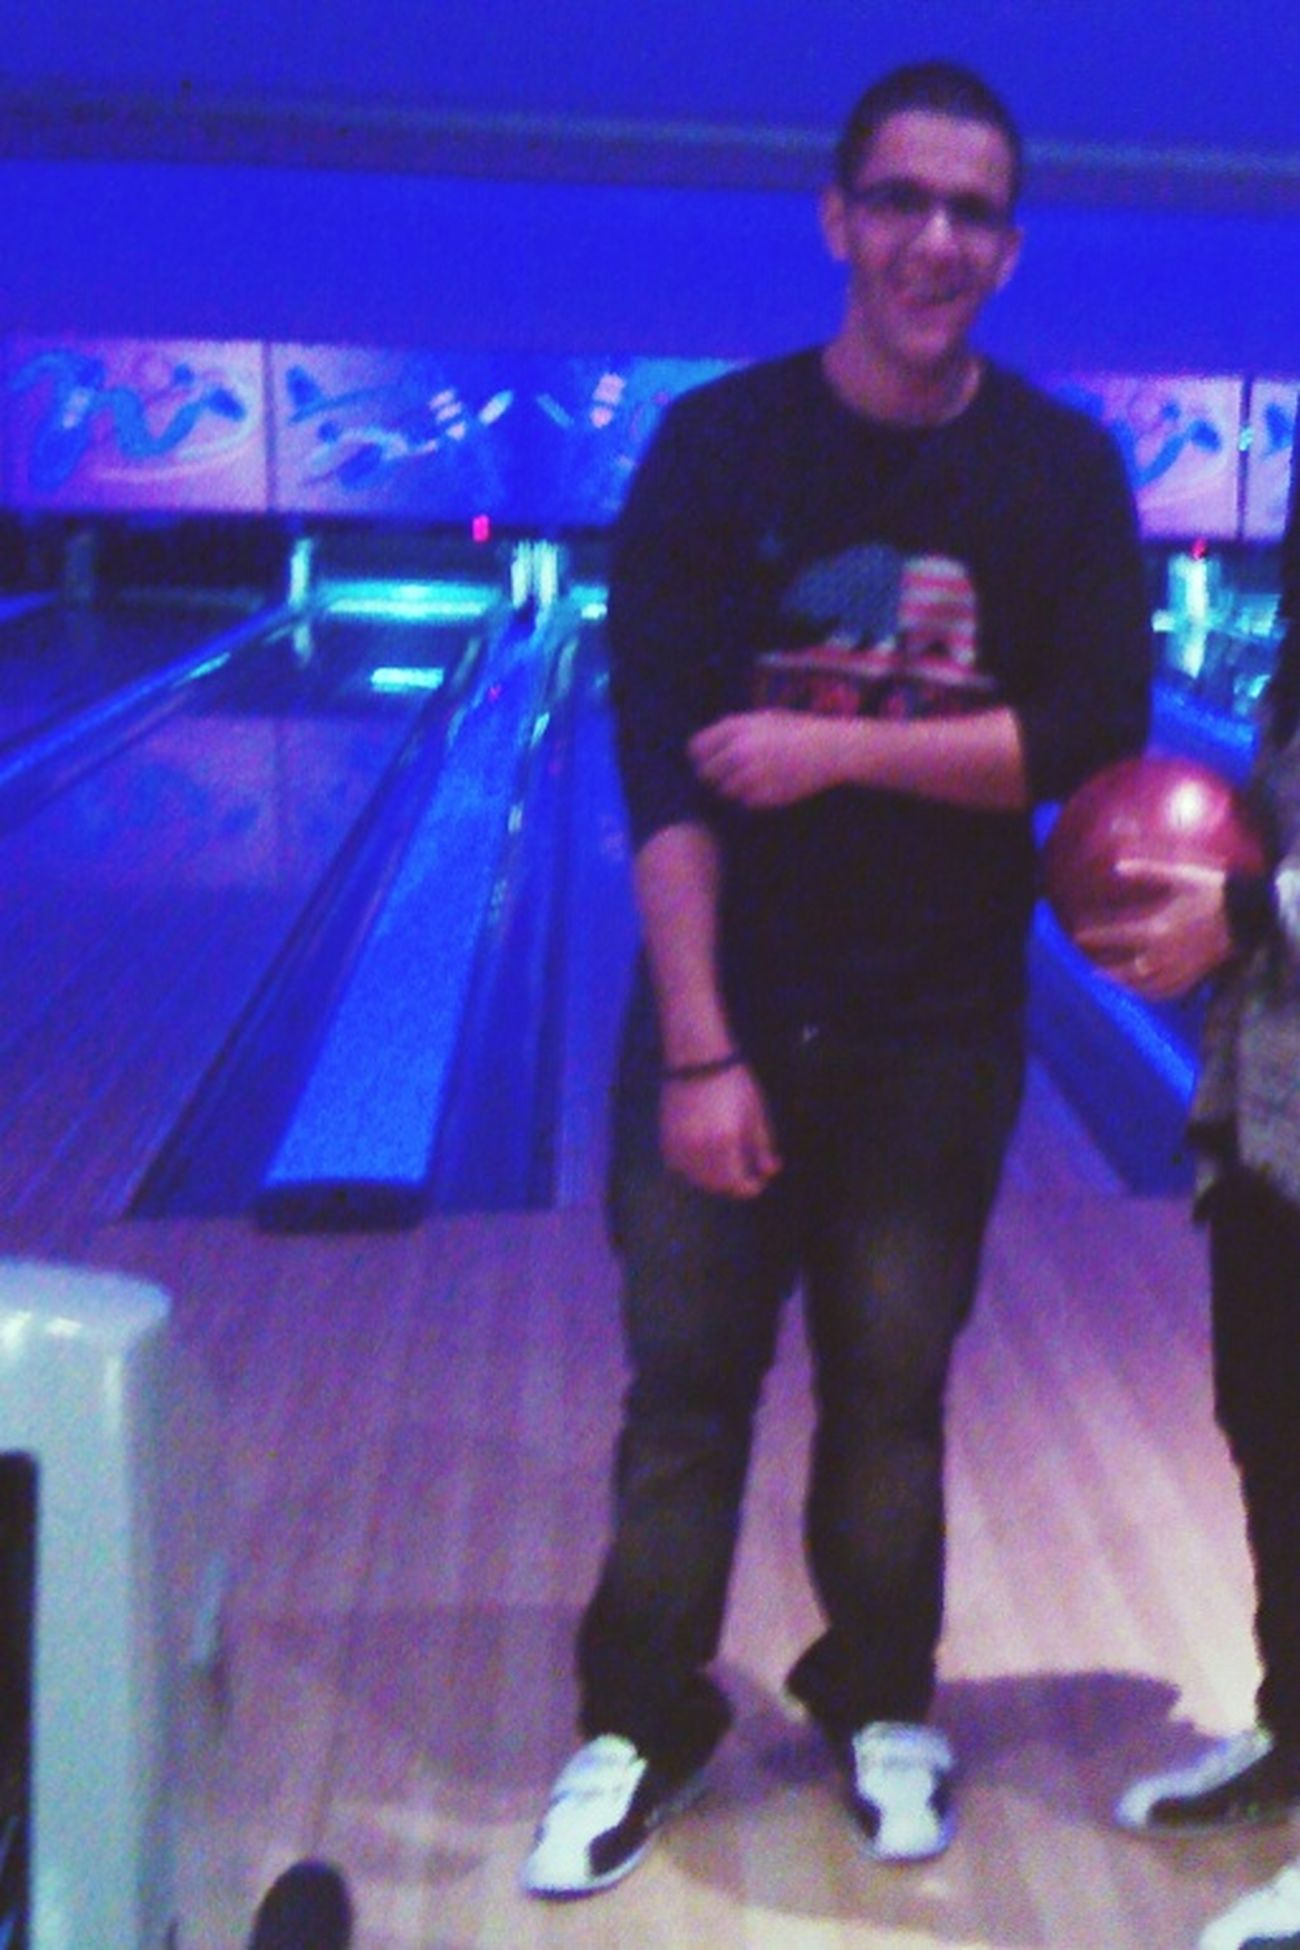 Hahaha havin fun bowling day